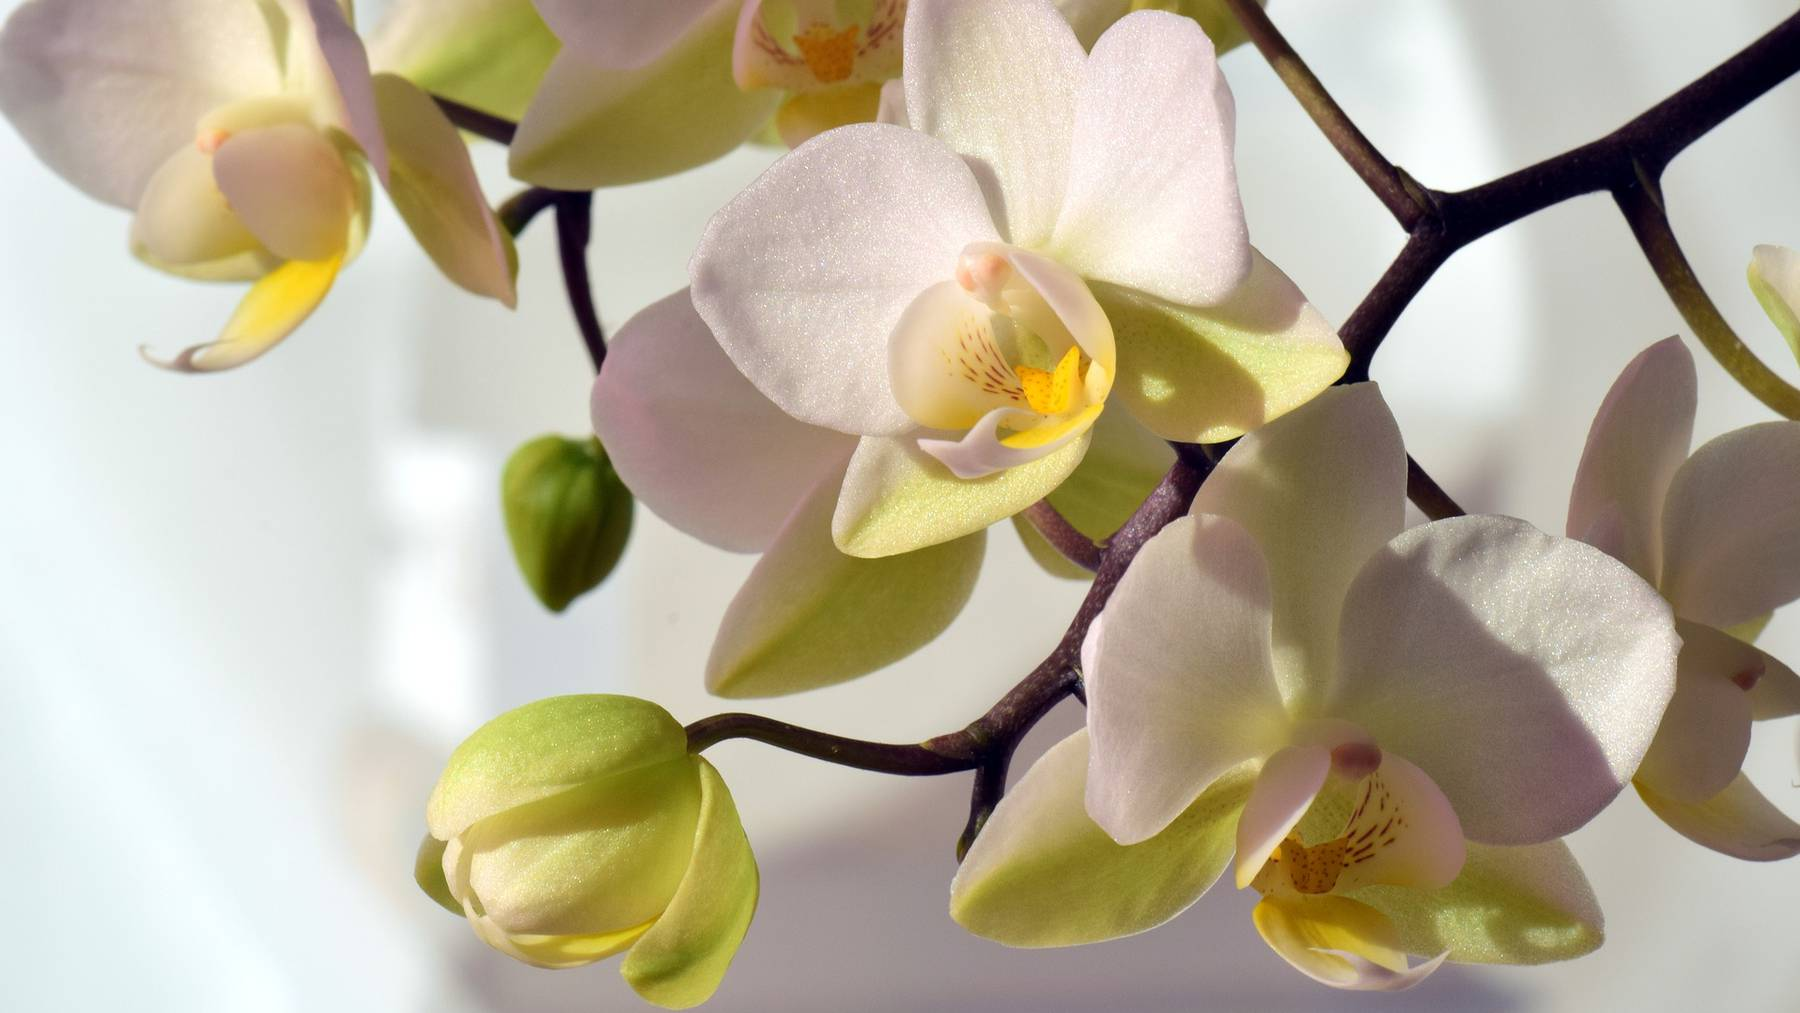 orchid-2181044_1920